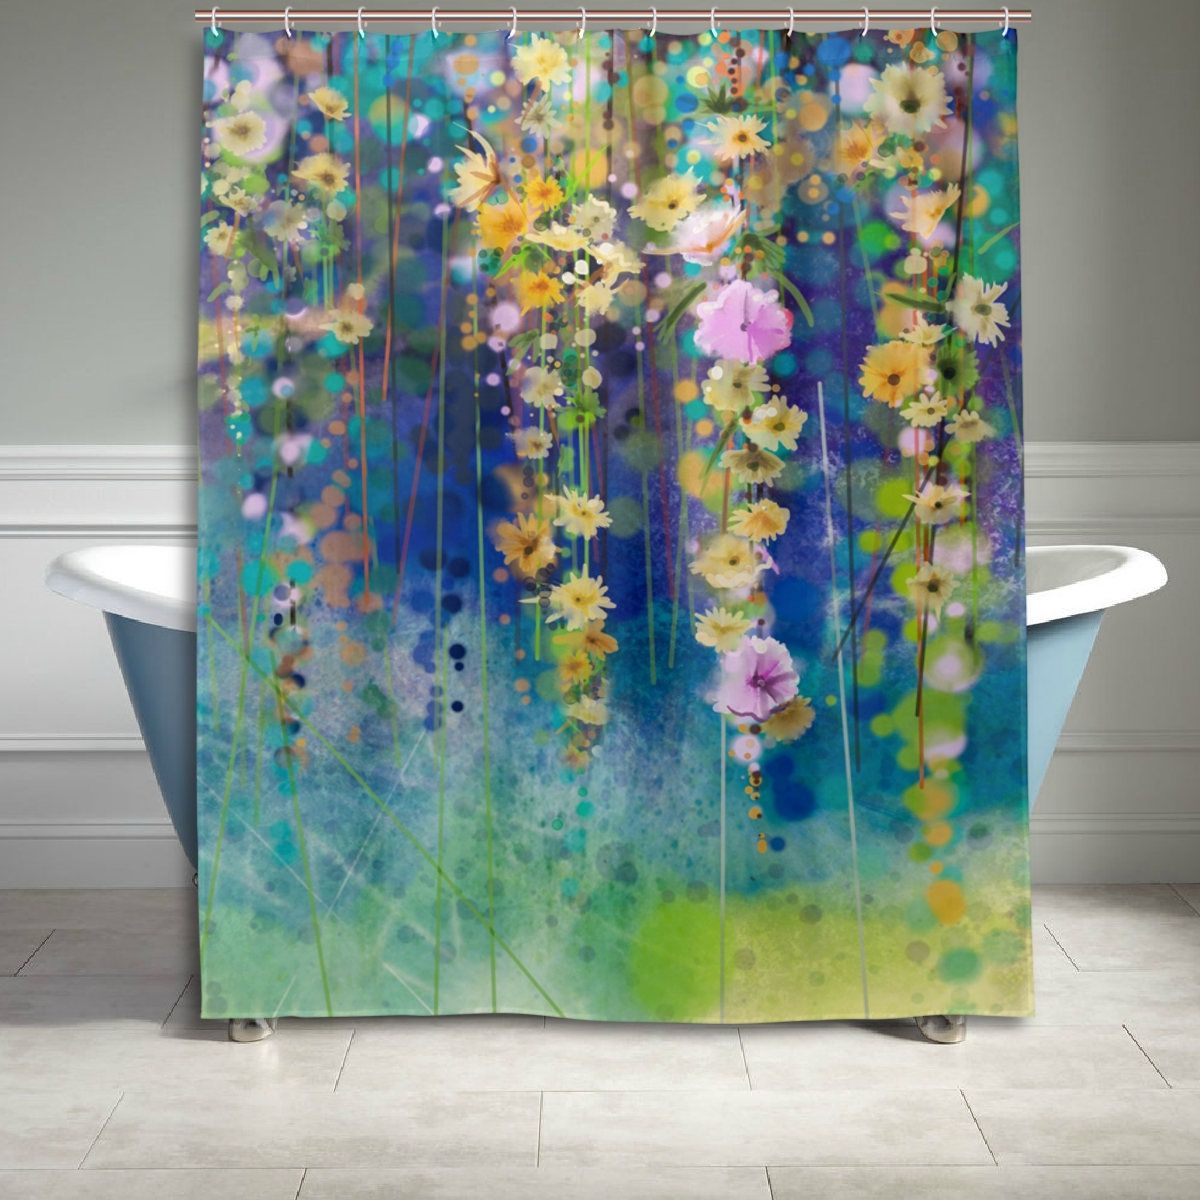 Watercolor Flower Blossoms Shower Curtain 60 X 72 Inch Floral ...